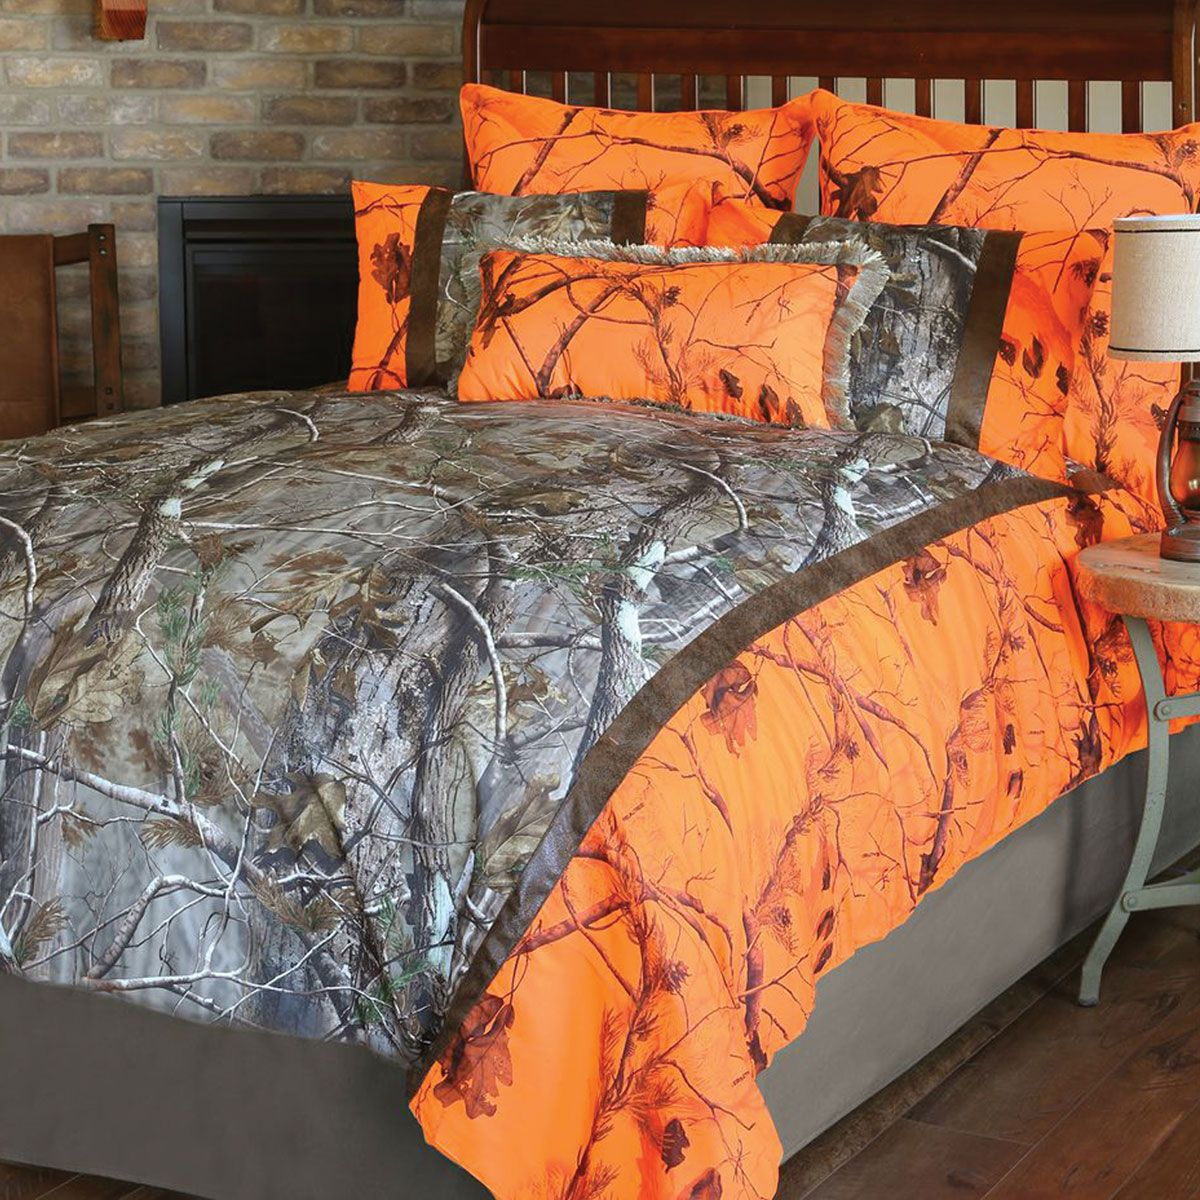 Realtree Ap And Orange Blaze Ap Camo Bed Set Queen